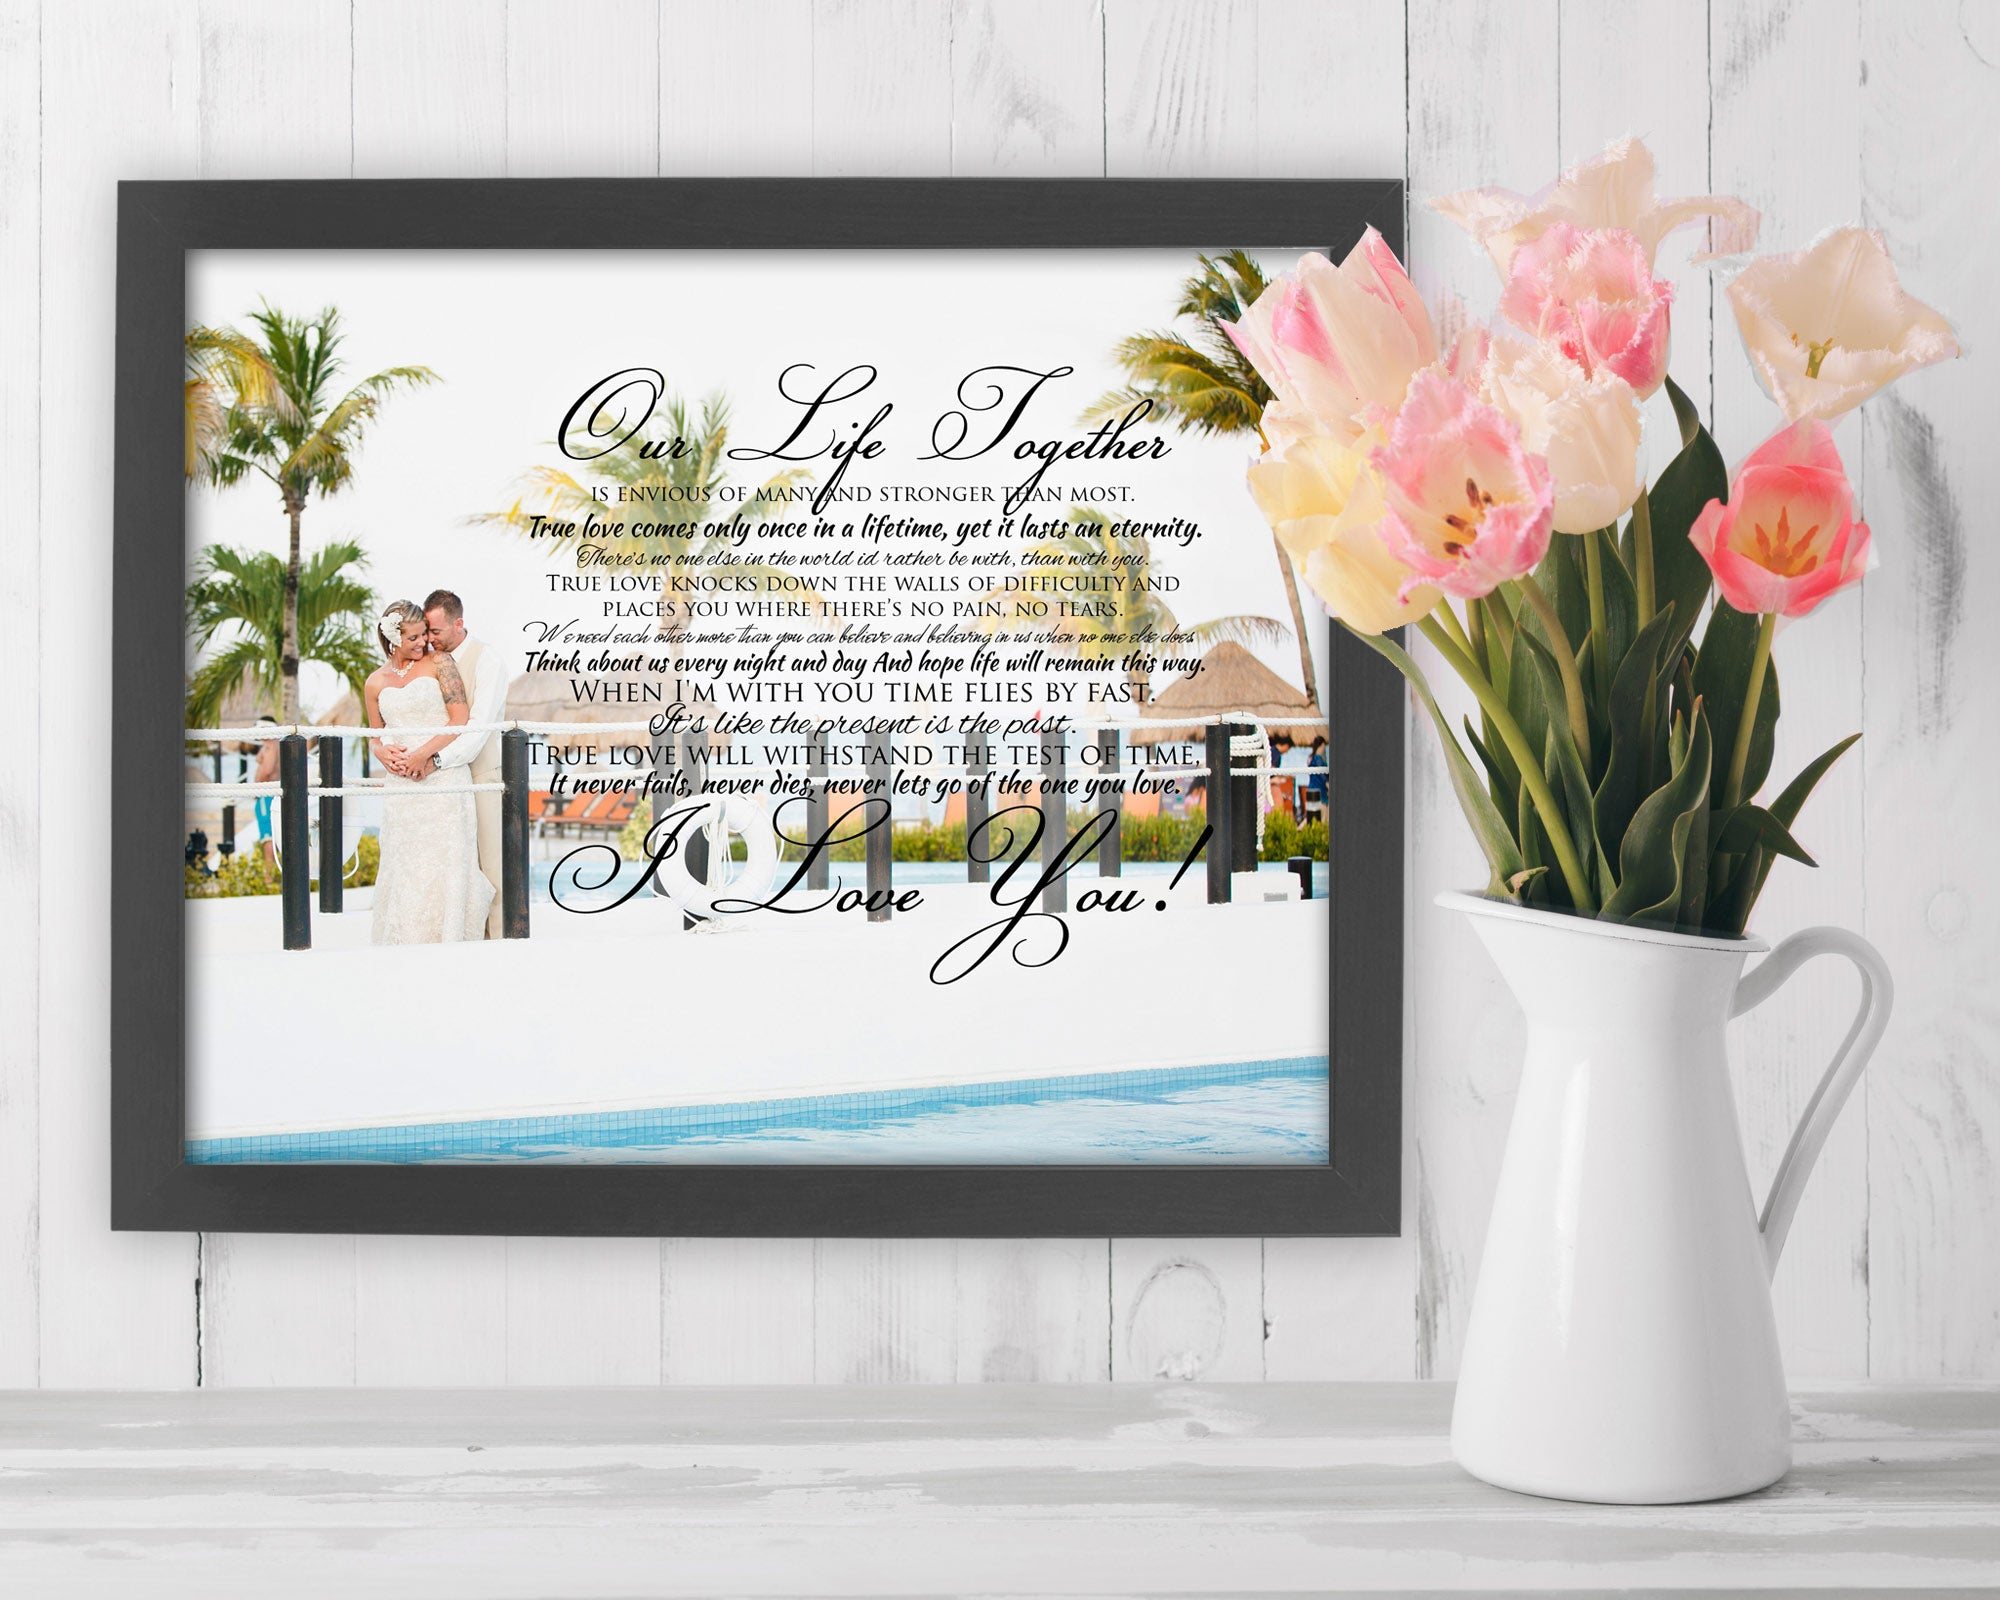 Framed Wedding Vow Photo - Fine art and canvas personalized anniversary and inspirational gifts